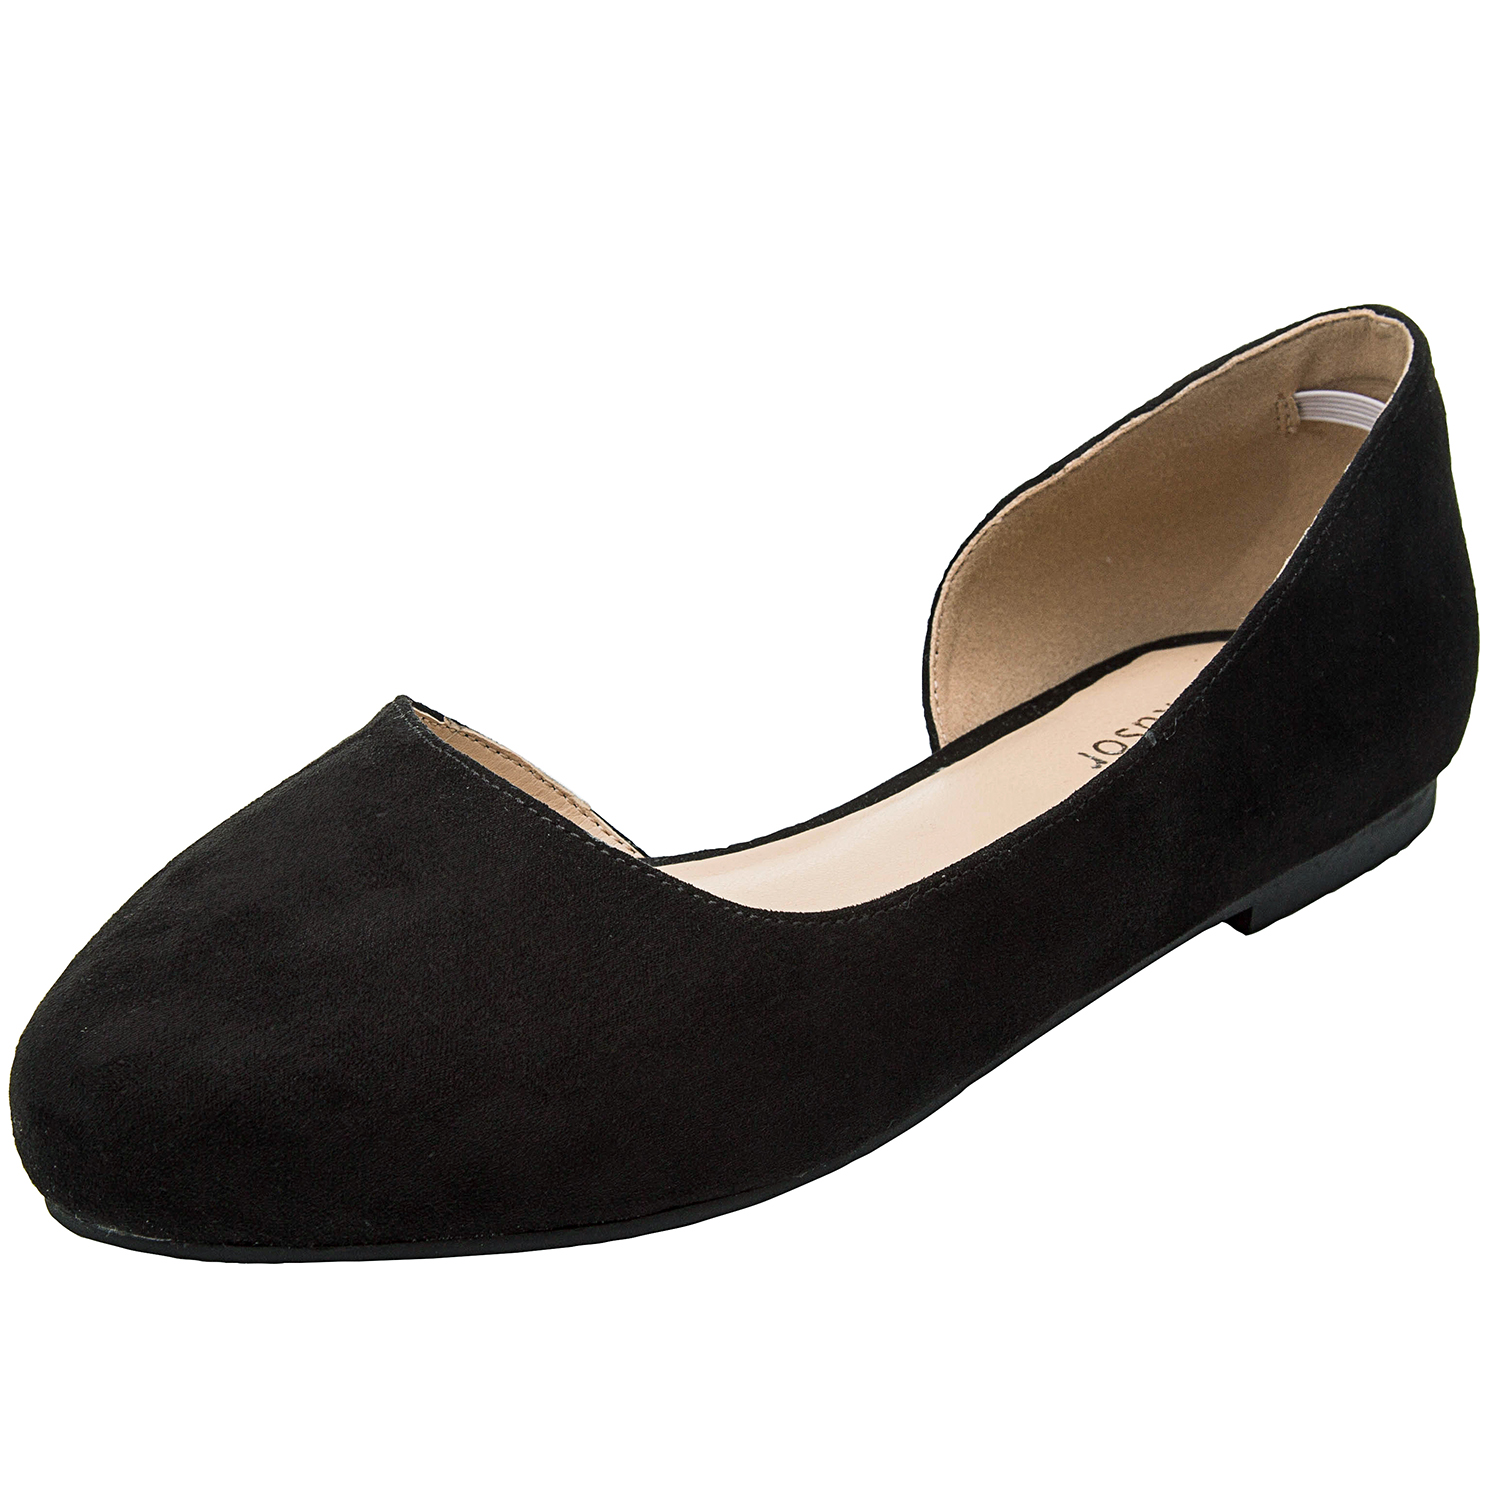 798305cc5d US  29.99 - Aukusor Women s Wide Width Ballet Flat - Comfortable Sandals  Slip On Pointed Toe Summer Casual Shoes. - www.luoika-us.com